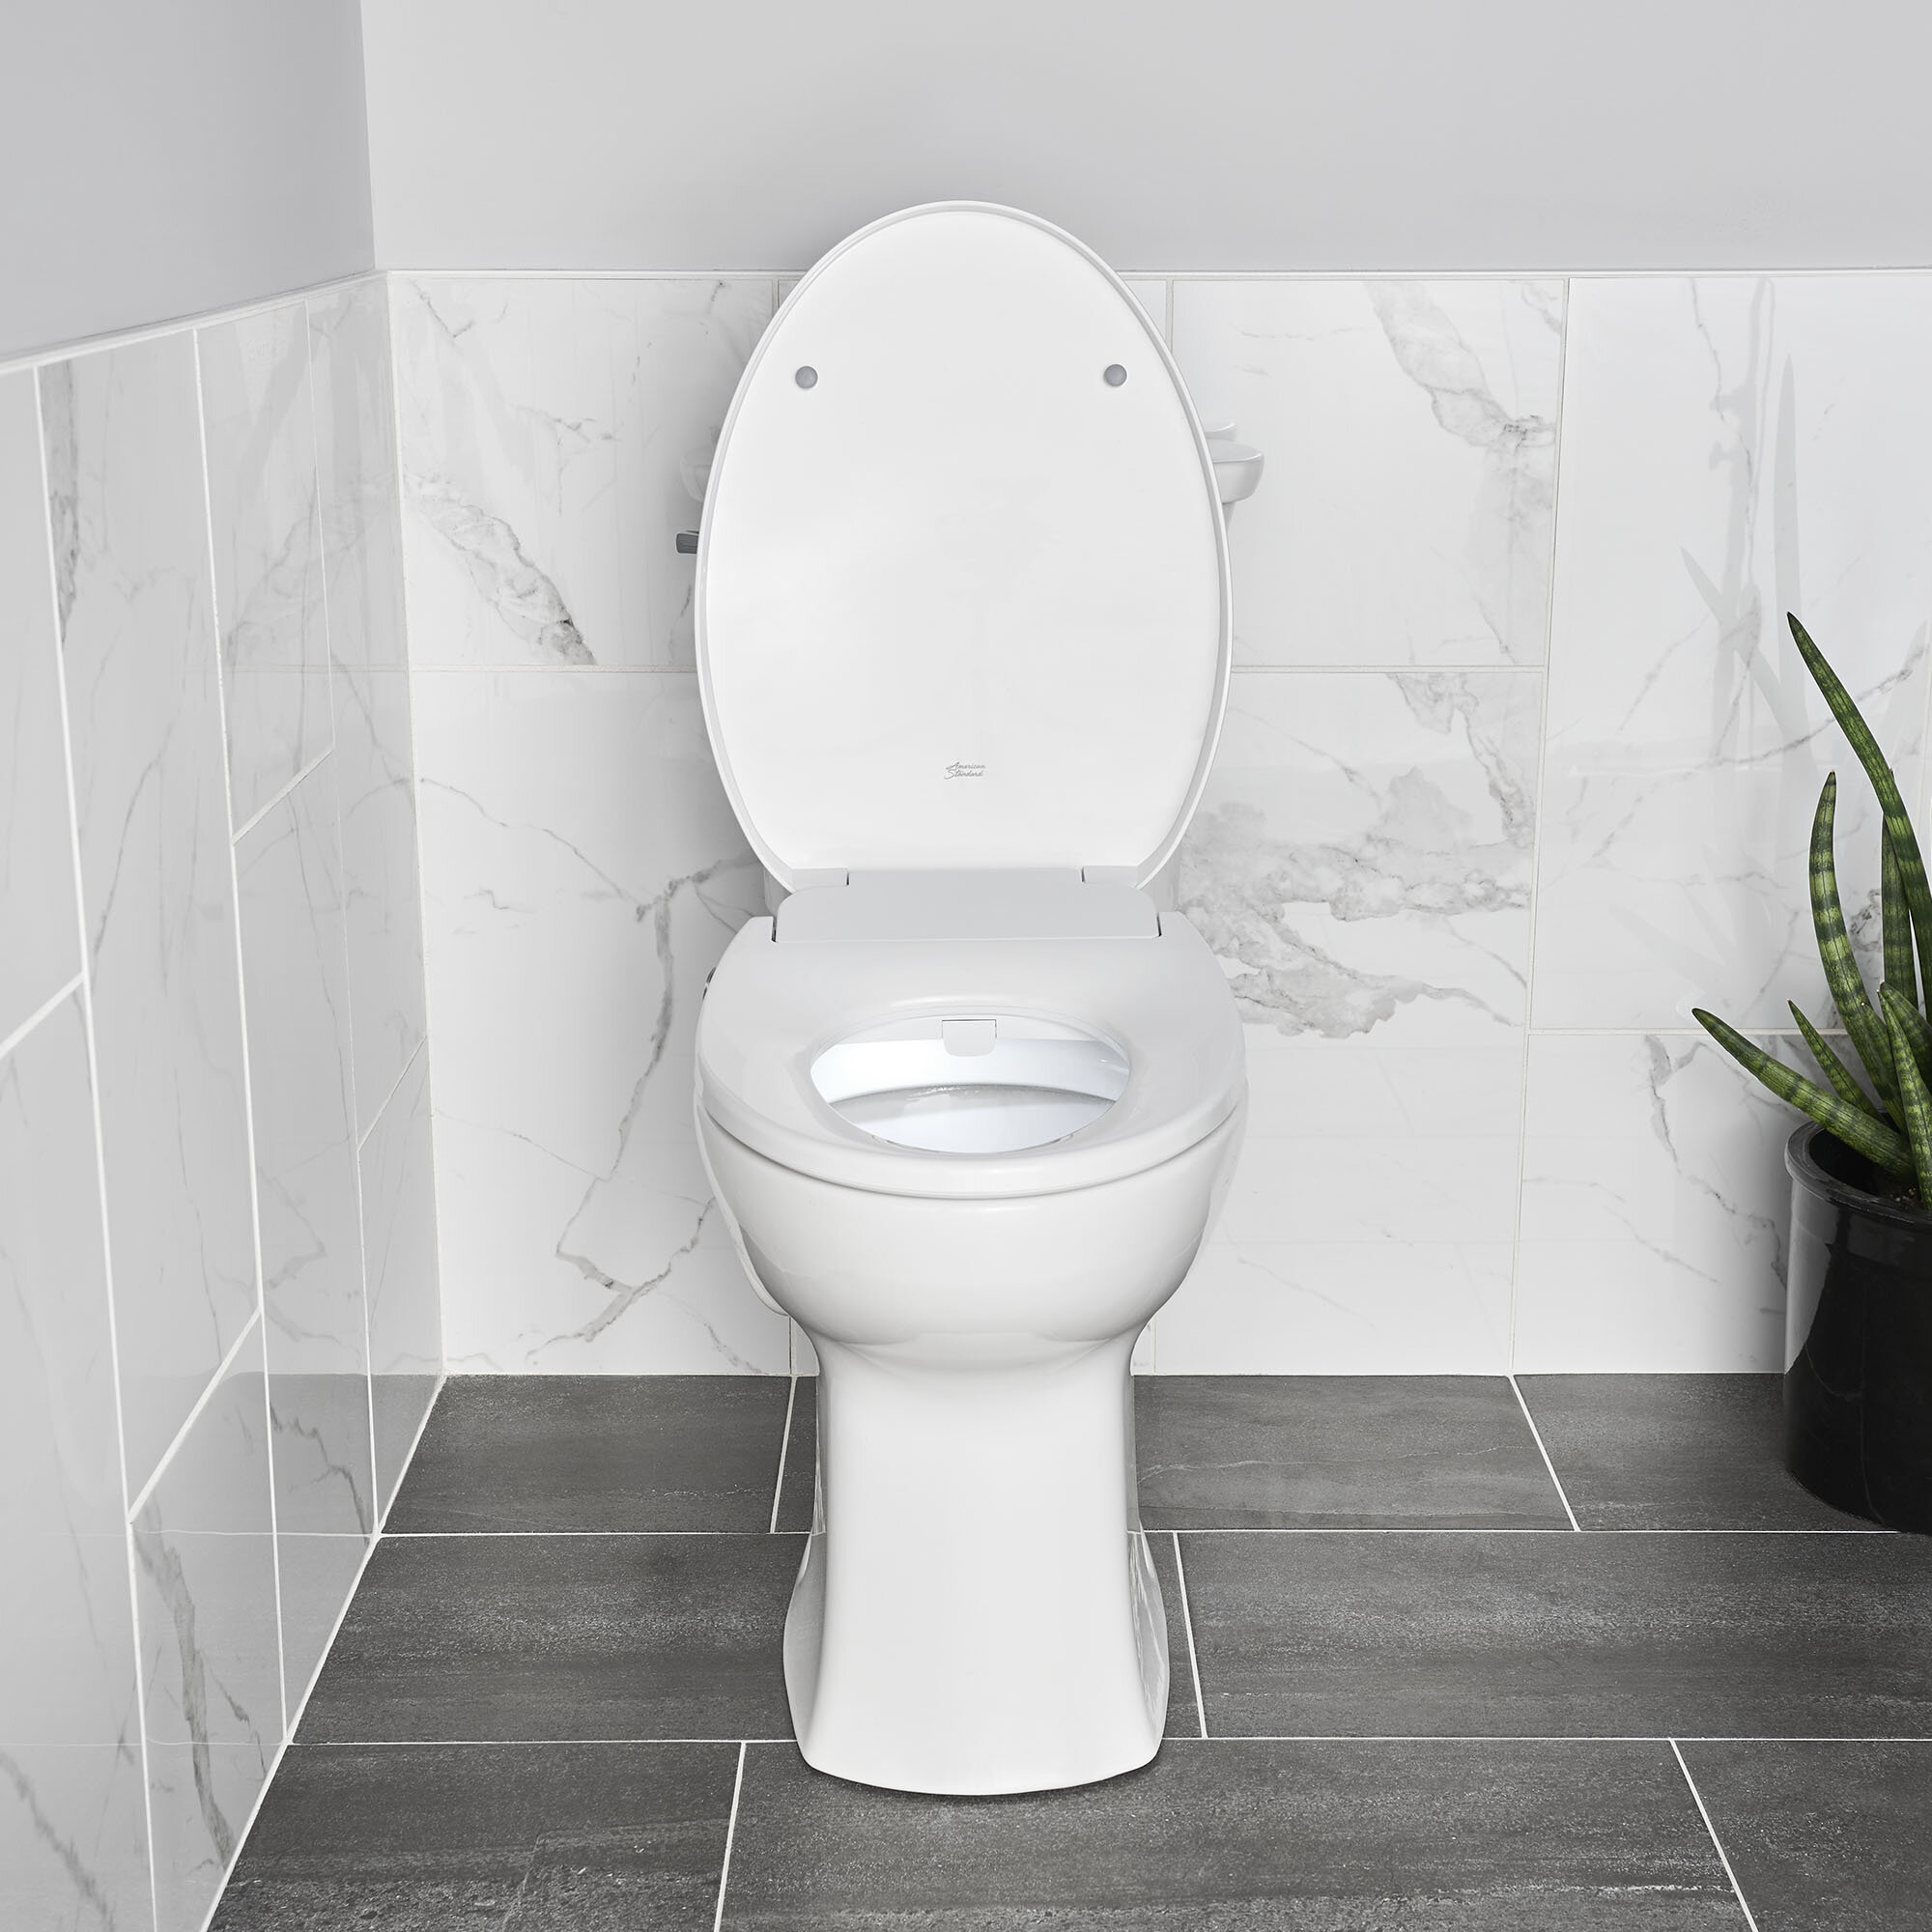 American Standard Spalets 2 0 Manual Spalet Toilet Elongated Bidet Seat Reviews Wayfair